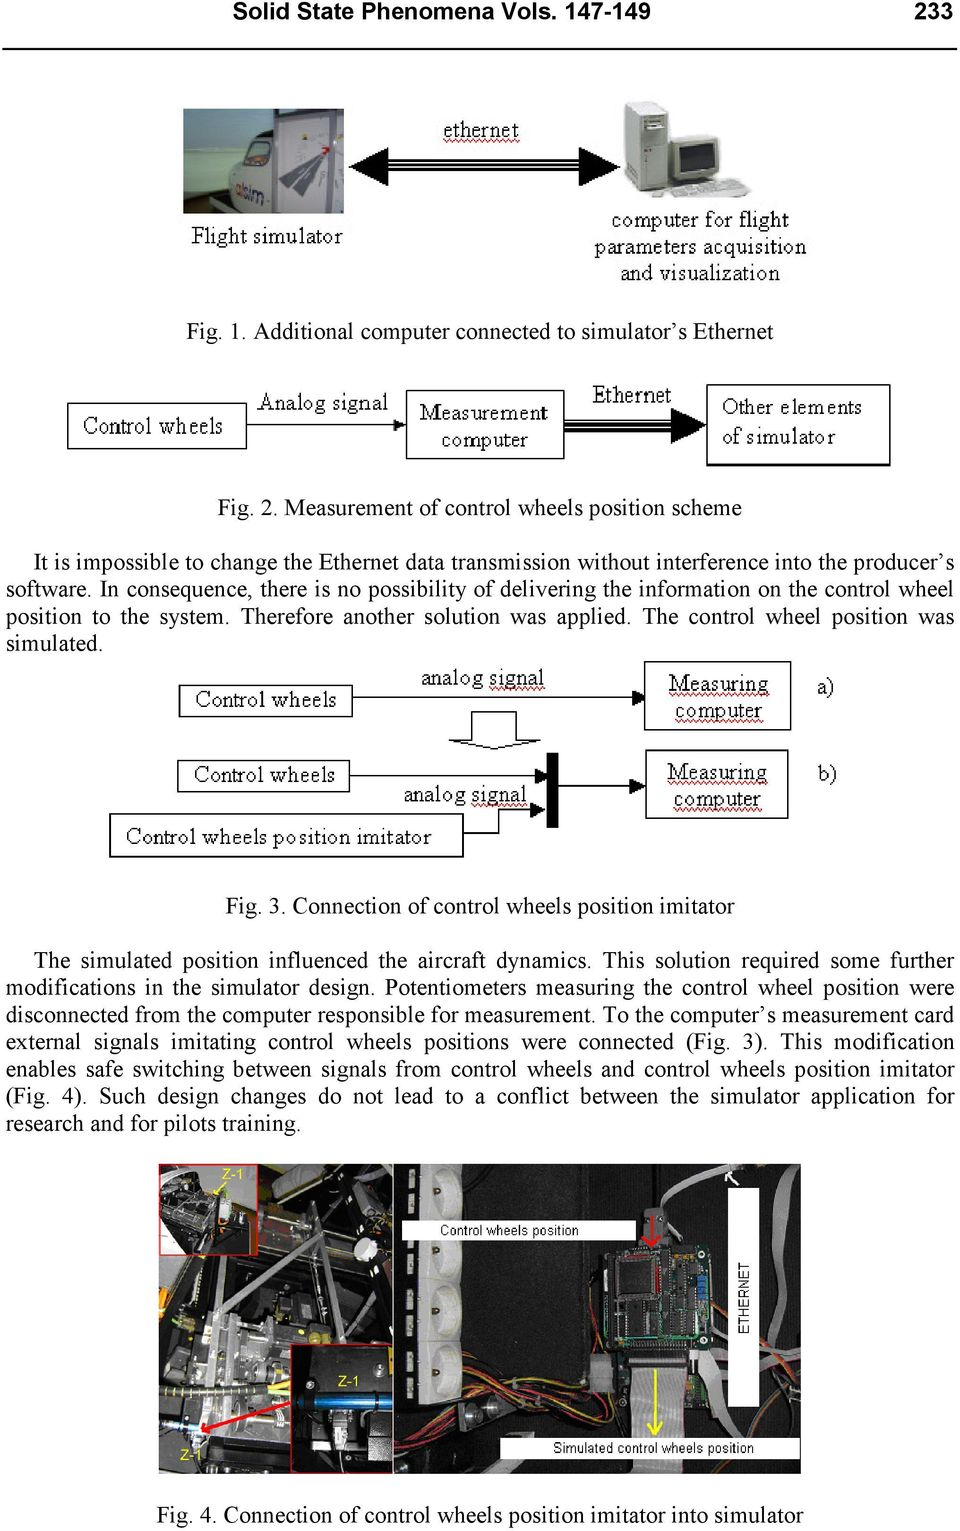 Fig. 3. Connection of control wheels position imitator The simulated position influenced the aircraft dynamics. This solution required some further modifications in the simulator design.